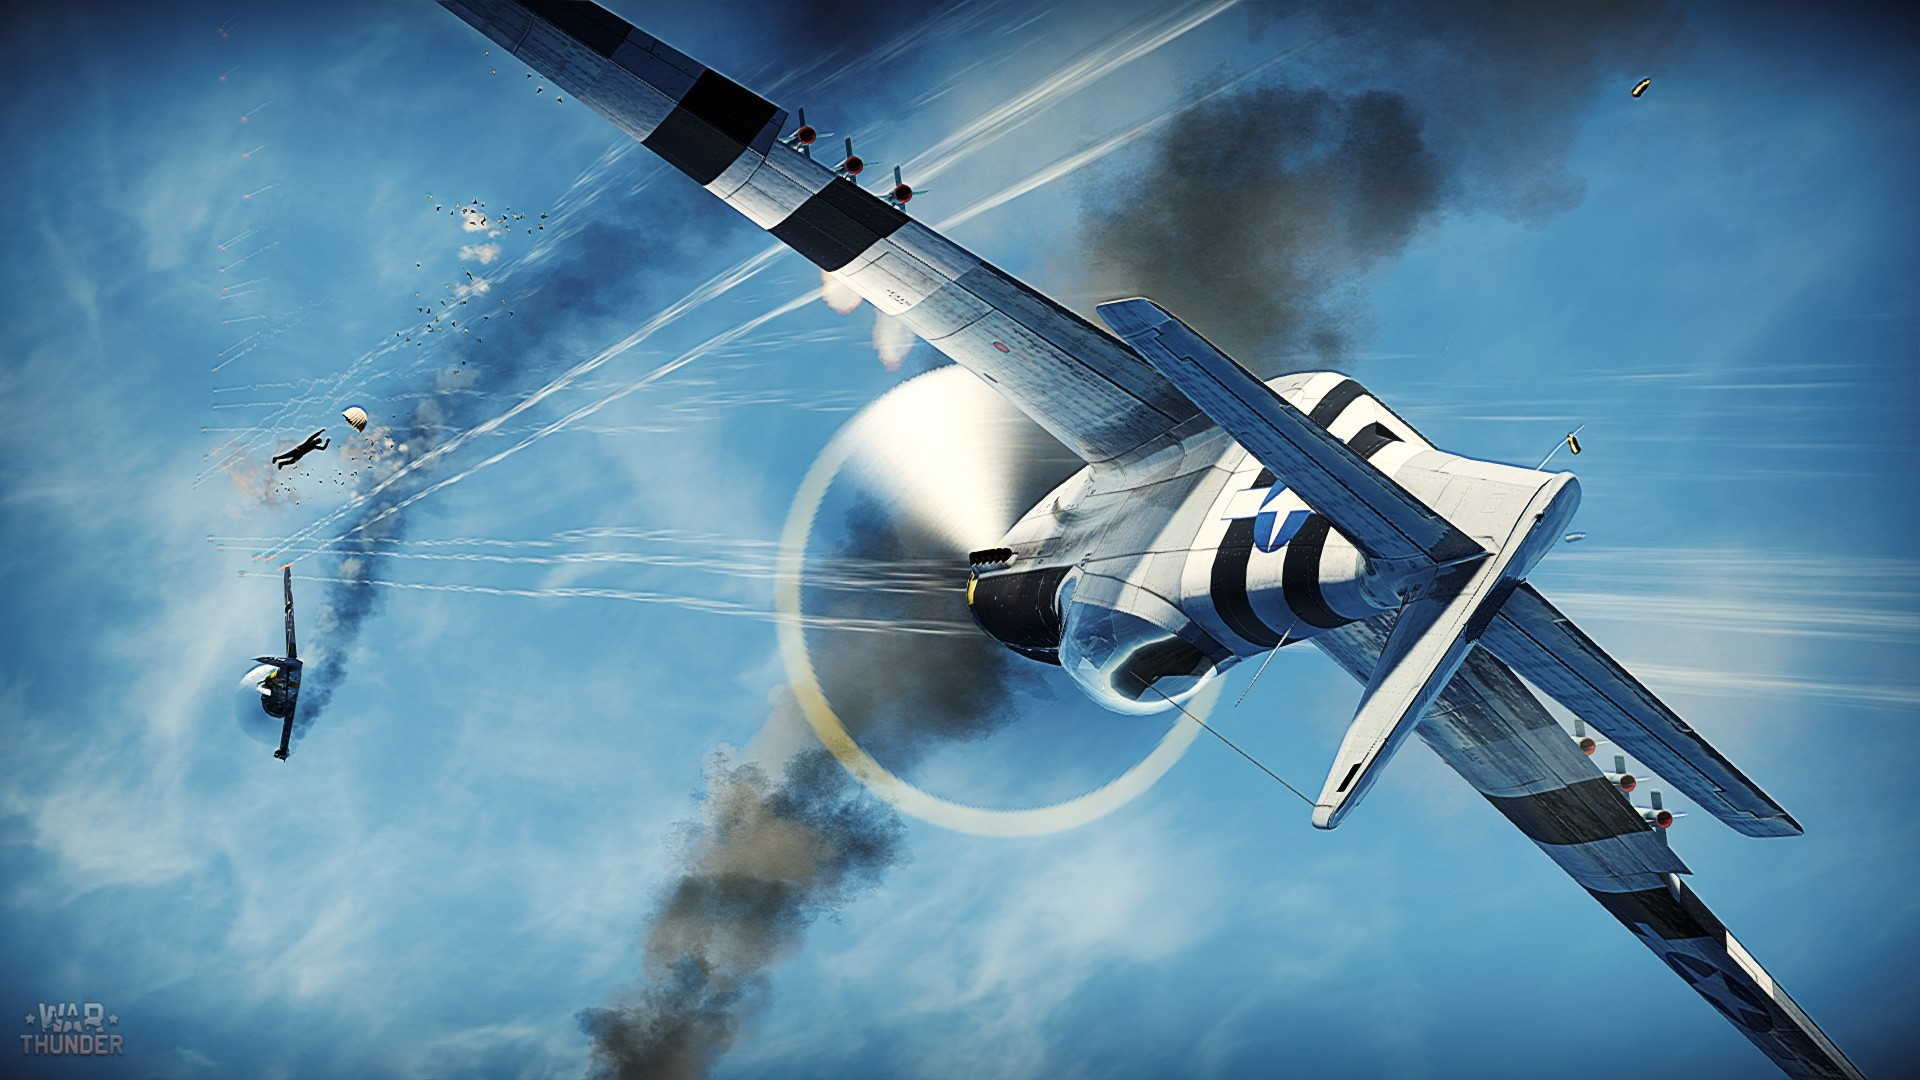 War Thunder is the same game on PS4 and PC, says dev